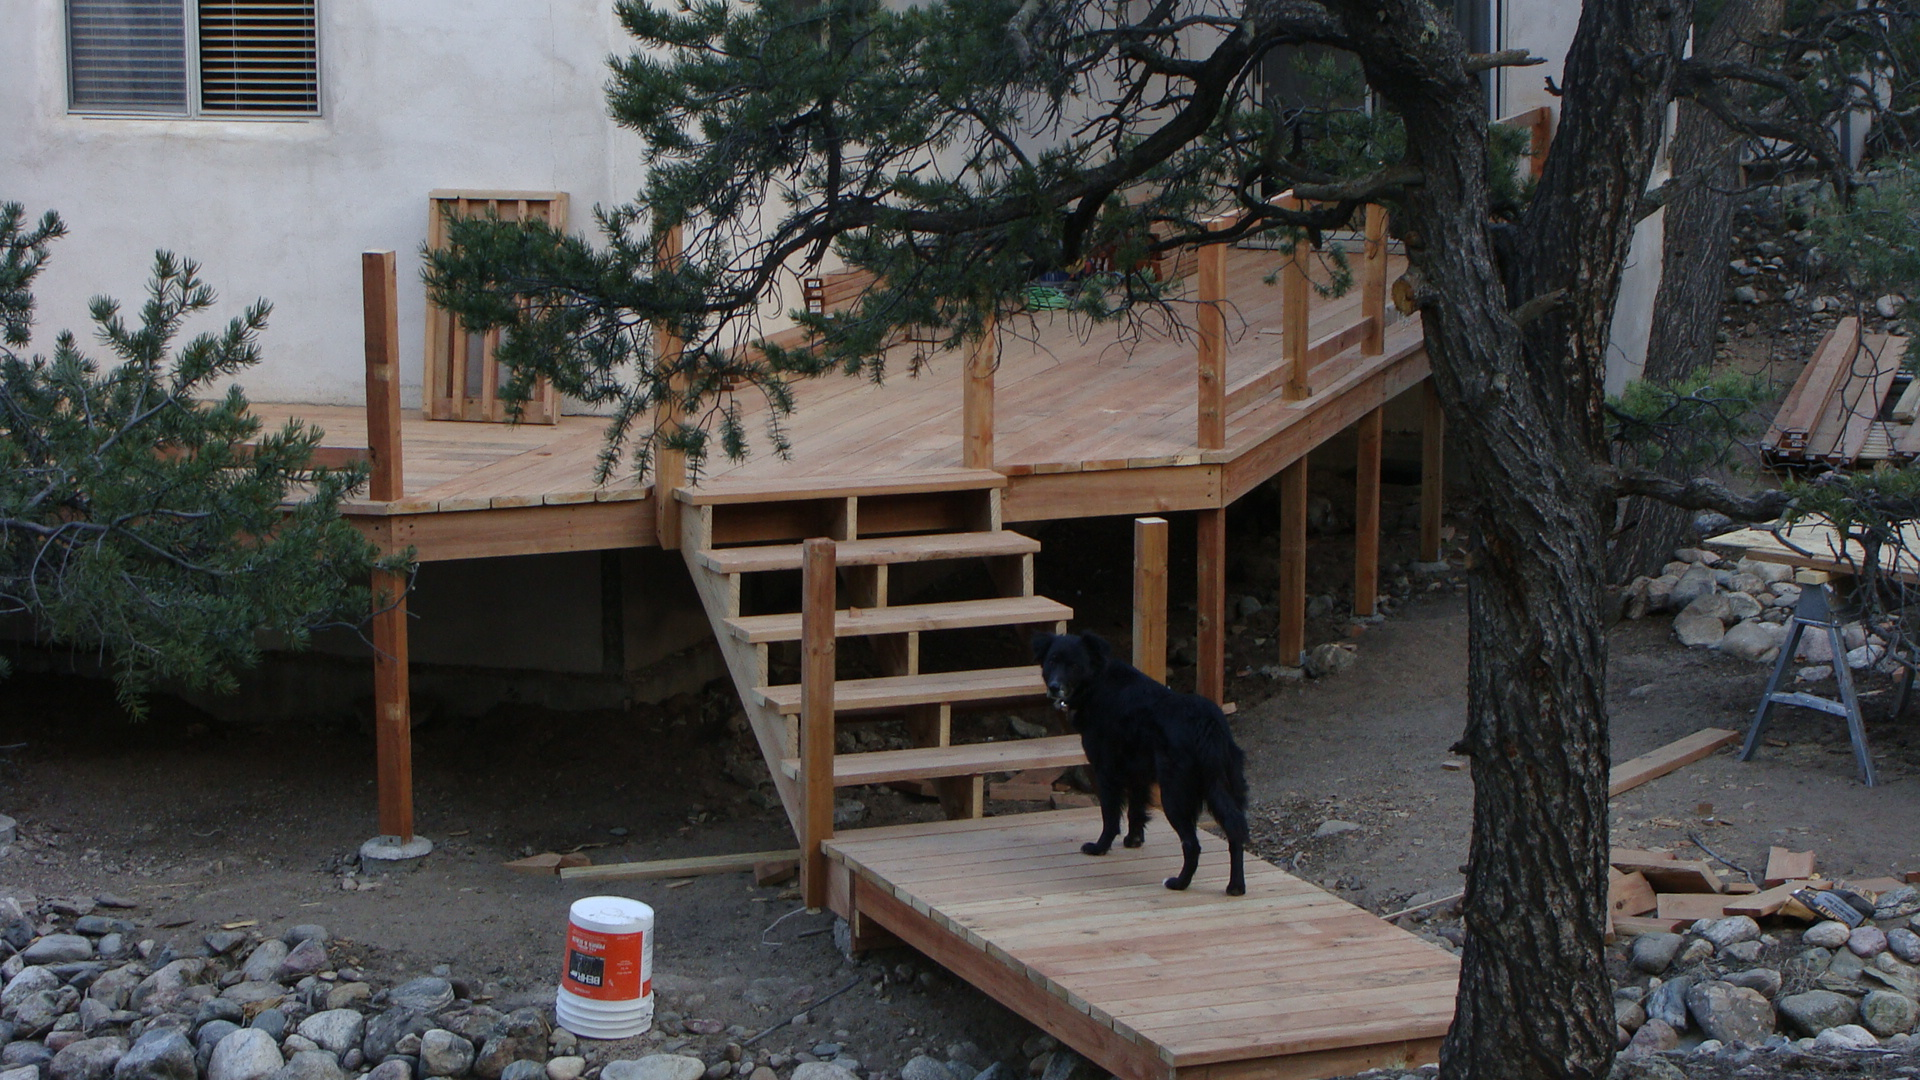 The deck is coming right along too & Luke approves!